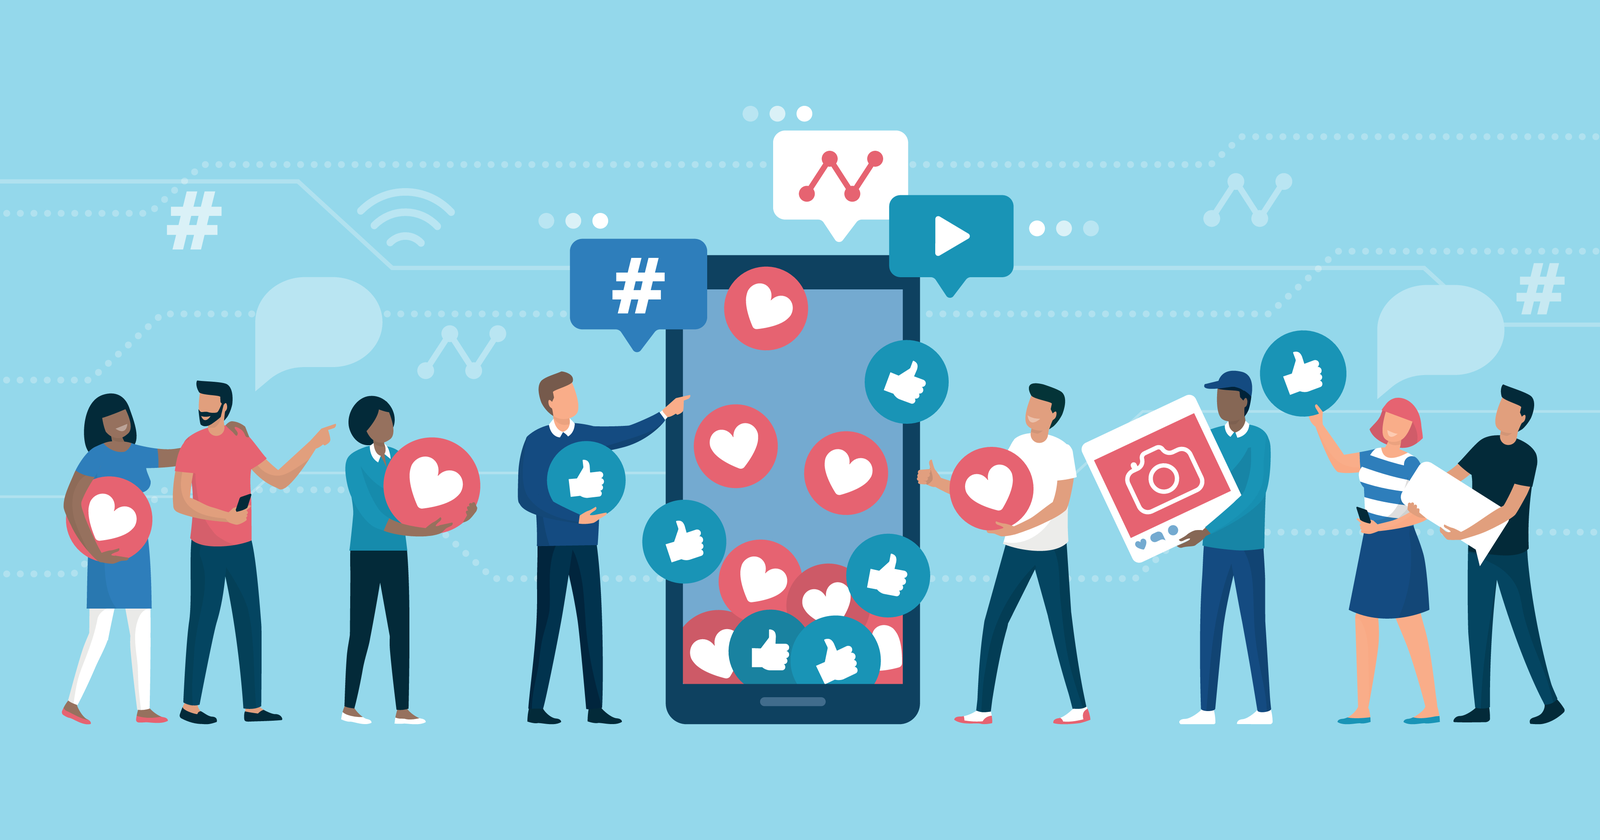 Colorful Illustration of social media advertising and notifications